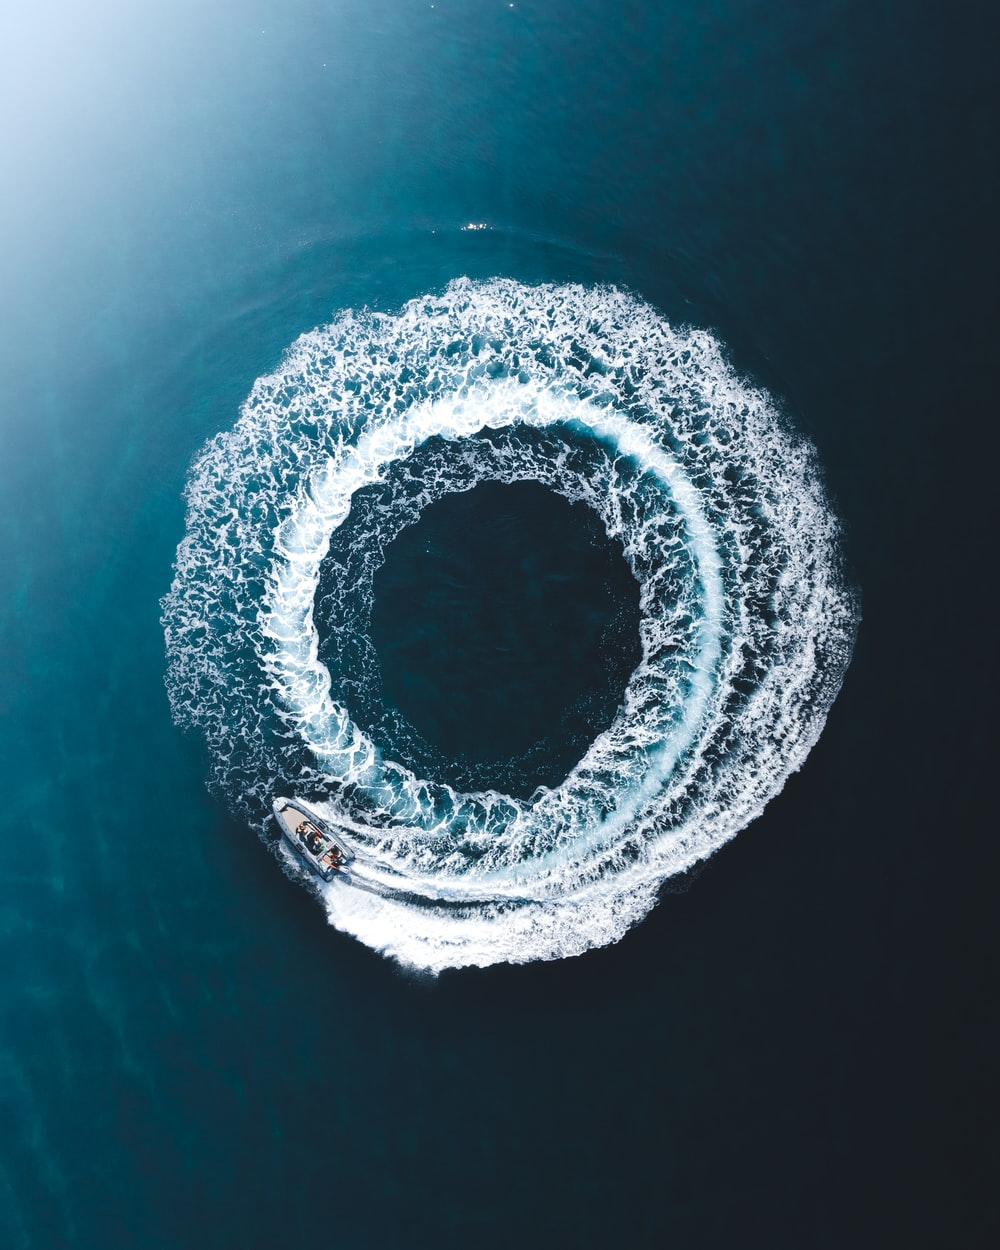 round hole in water in close up photography